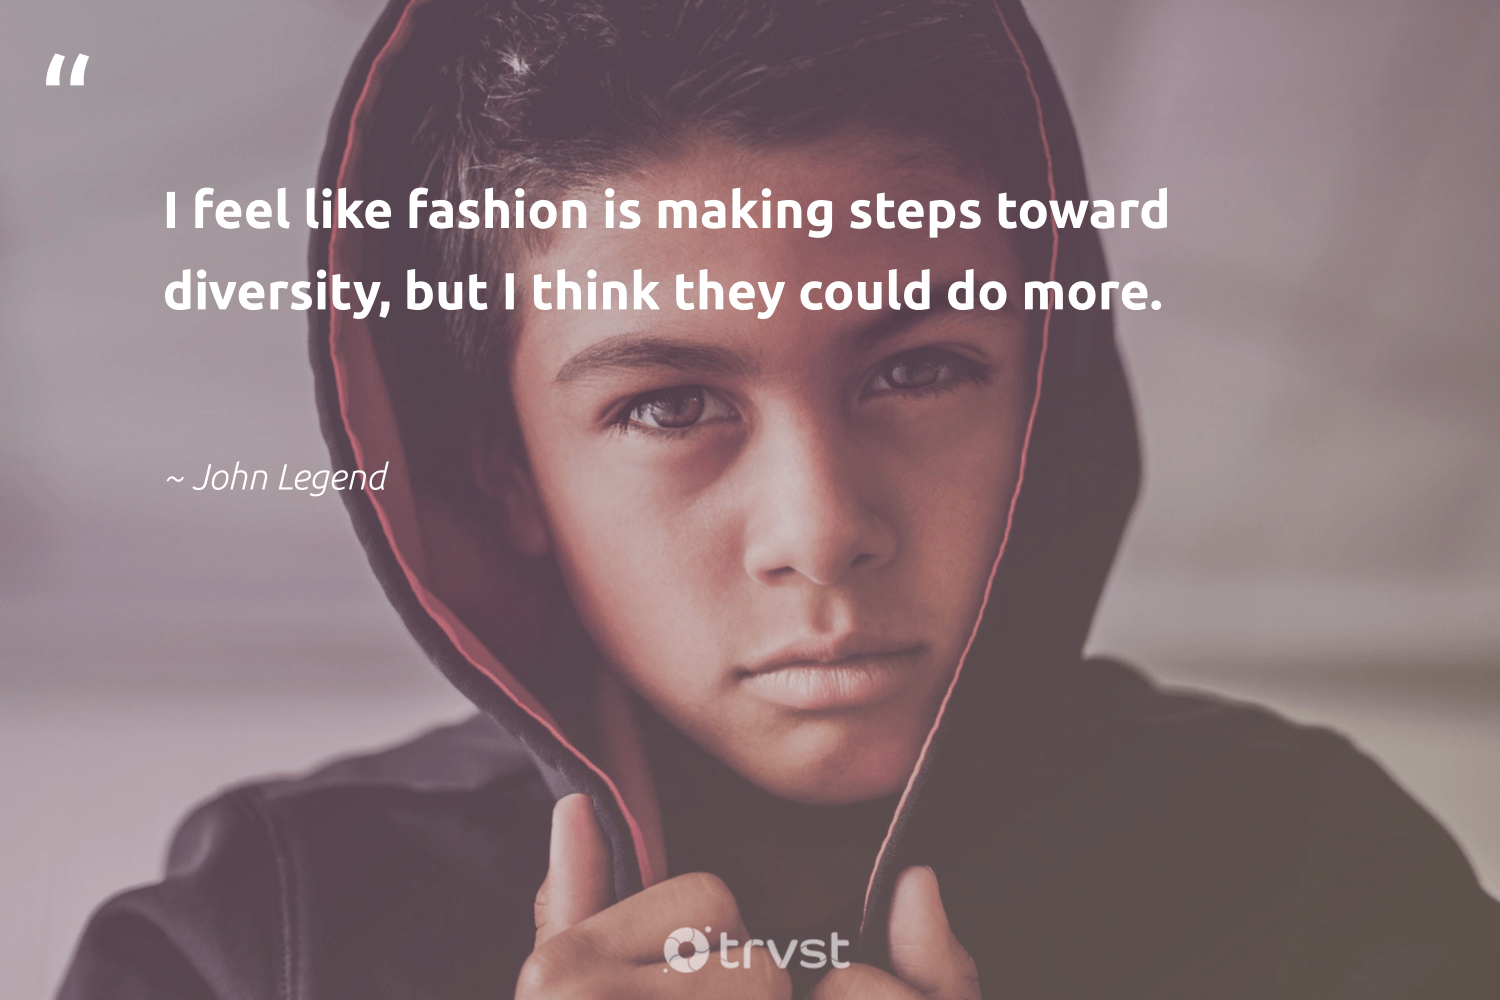 """I feel like fashion is making steps toward diversity, but I think they could do more.""  - John Legend #trvst #quotes #diversity #inclusion #discrimination #makeadifference #bethechange #collectiveaction #representationmatters #weareallone #socialgood #gogreen"